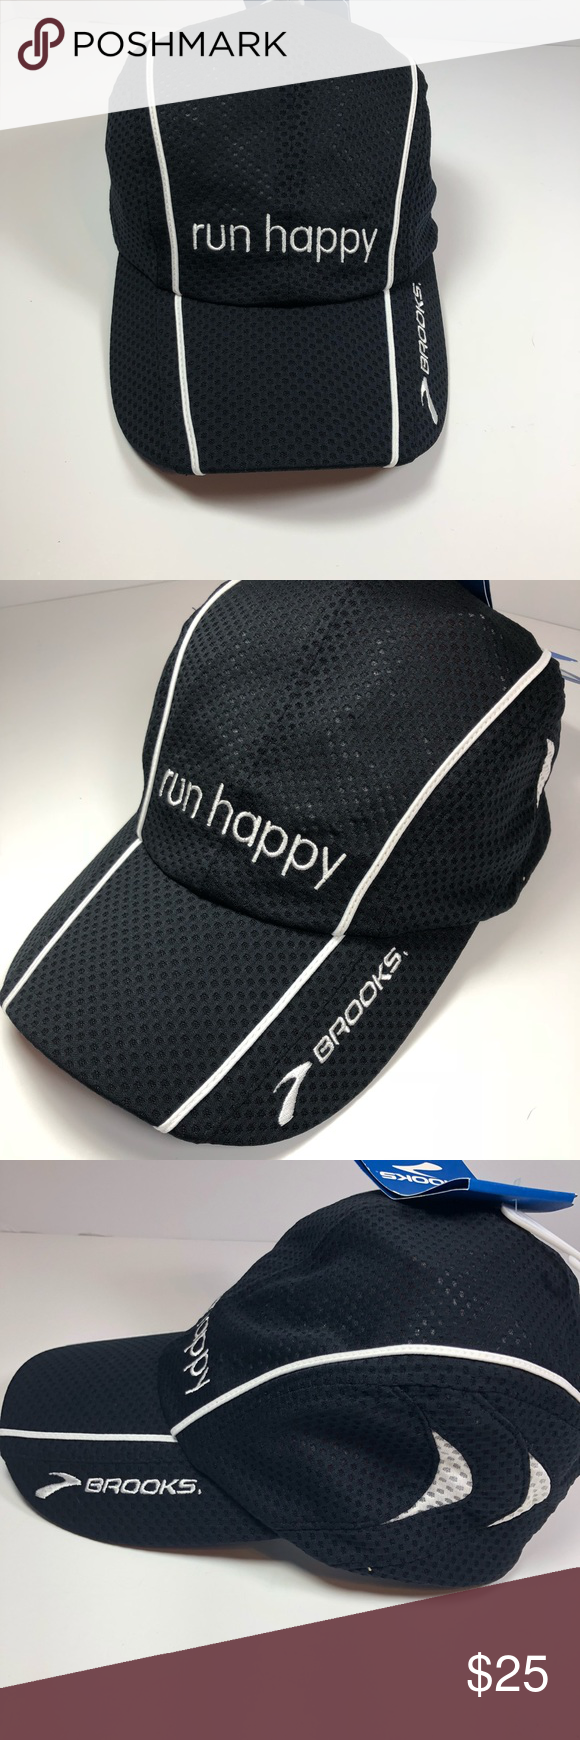 "3ca7daeb Brooks ""Run Happy"" mesh cap New with tags mesh Brooks cap ""Run Happy"" Black/white  one size fits all. Never worn. Brooks Accessories Hats"